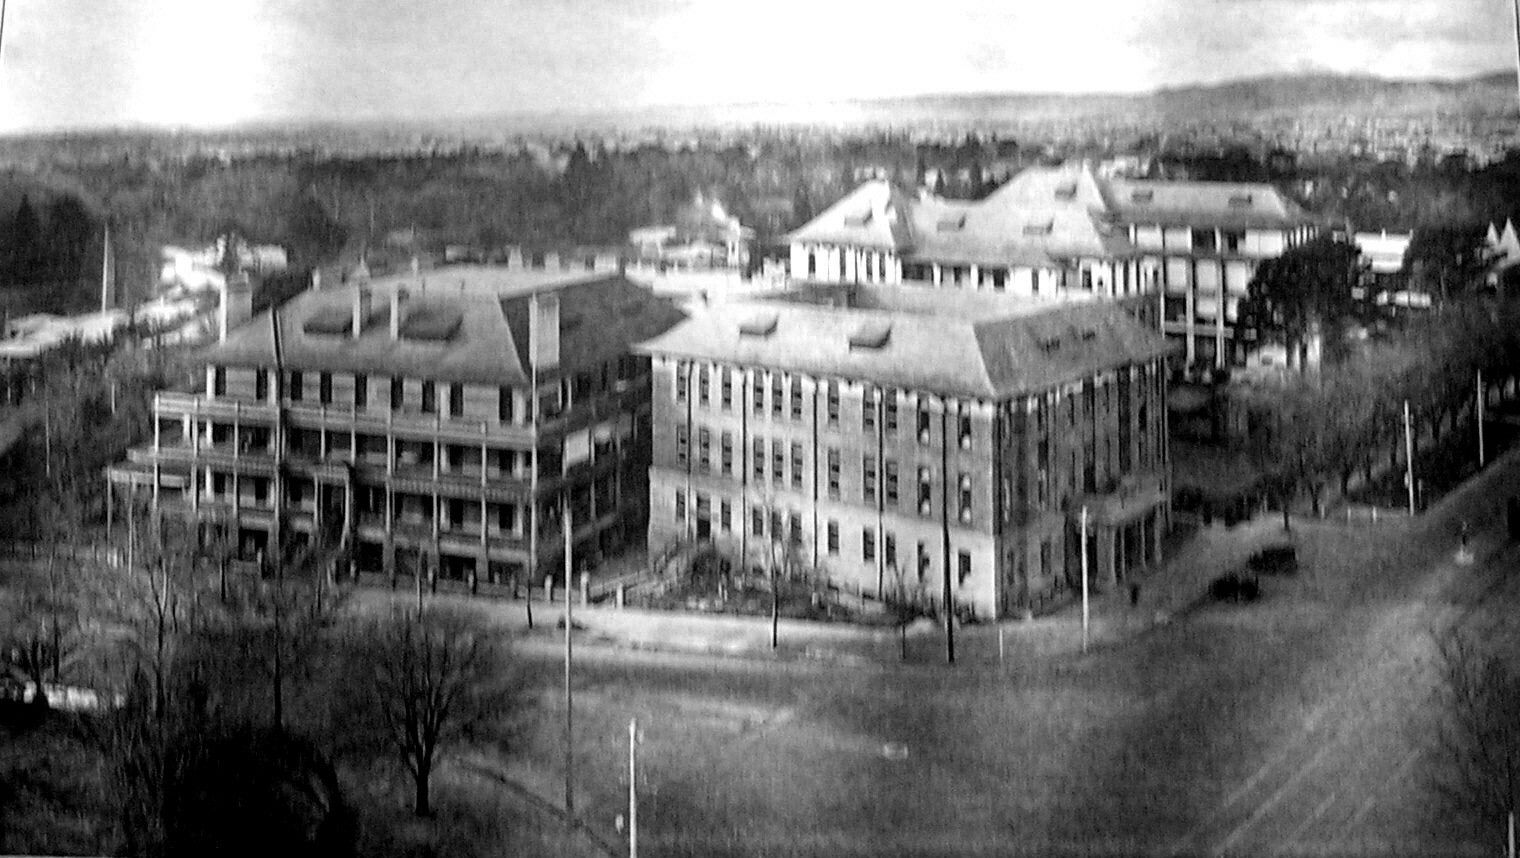 The Royal Adelaide Hospital at the north side of North Terrace  between Frome Road and the Adelaide Botanic Gardens, Adelaide in South Australia  (year unknown).